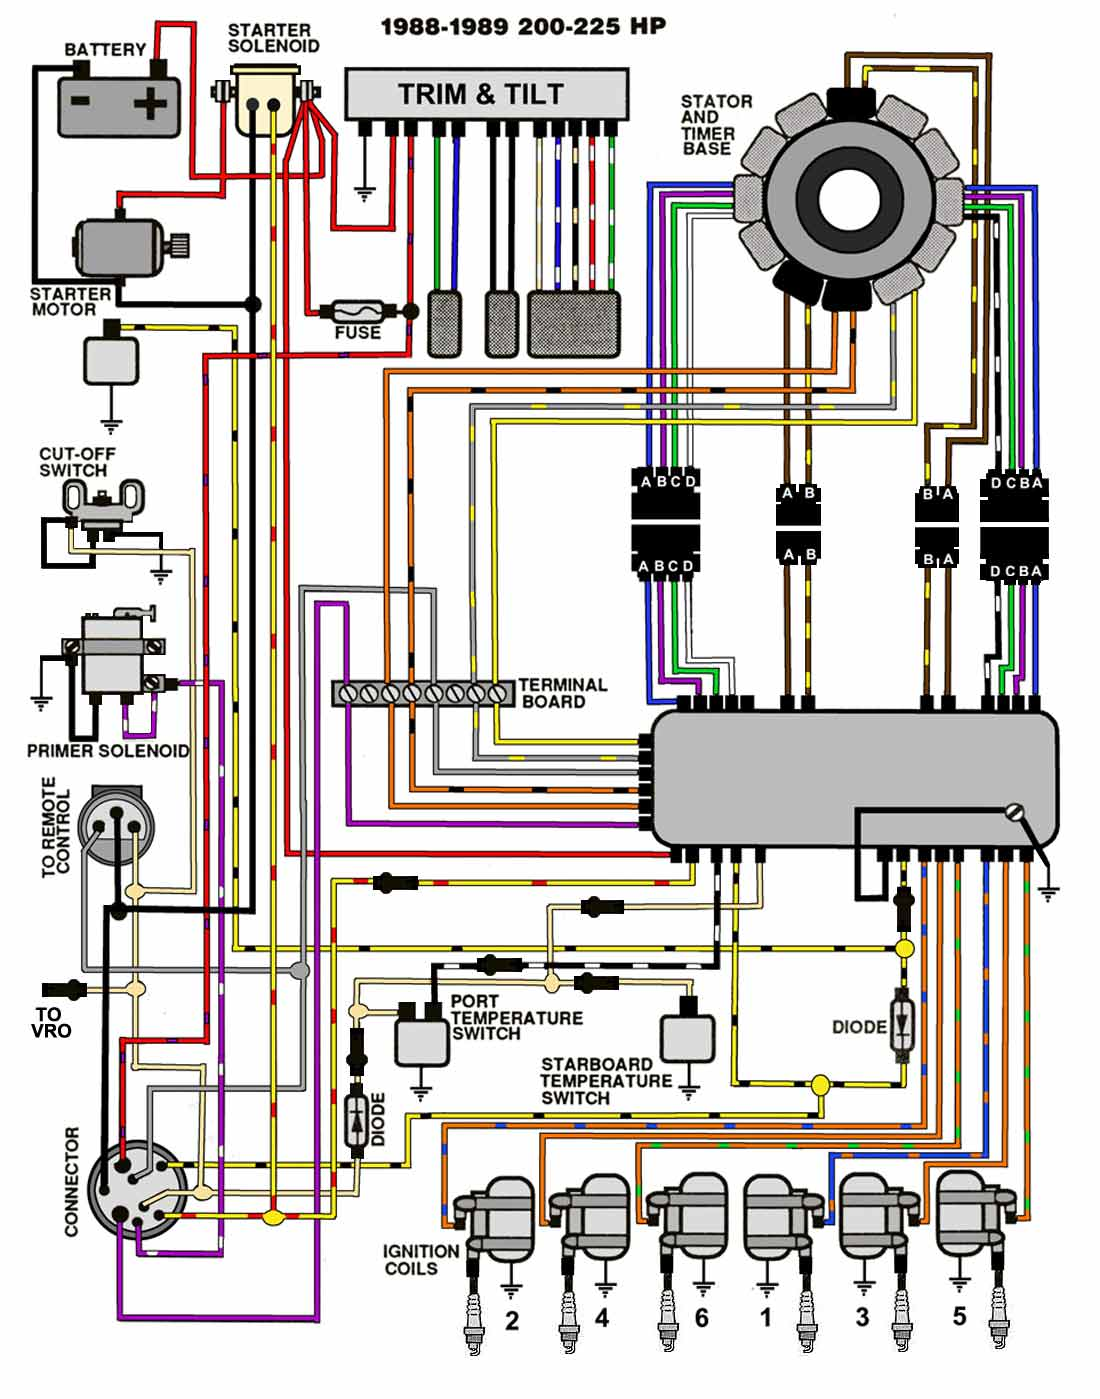 1988_89_200_225 mastertech marine evinrude johnson outboard wiring diagrams boat motor wiring diagram at creativeand.co